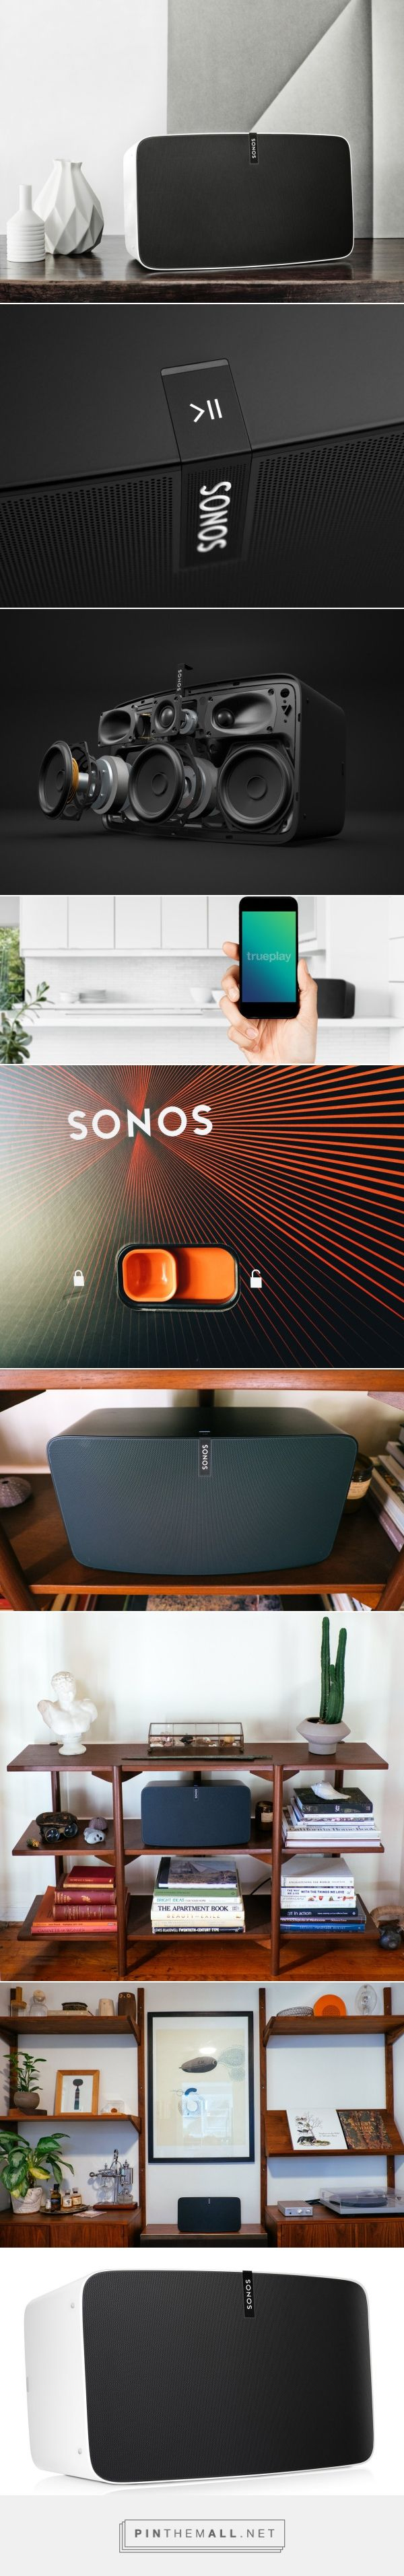 Sonos PLAY:5 Is Simplicity Born Out of Conflict - Design Milk - created via http://pinthemall.net